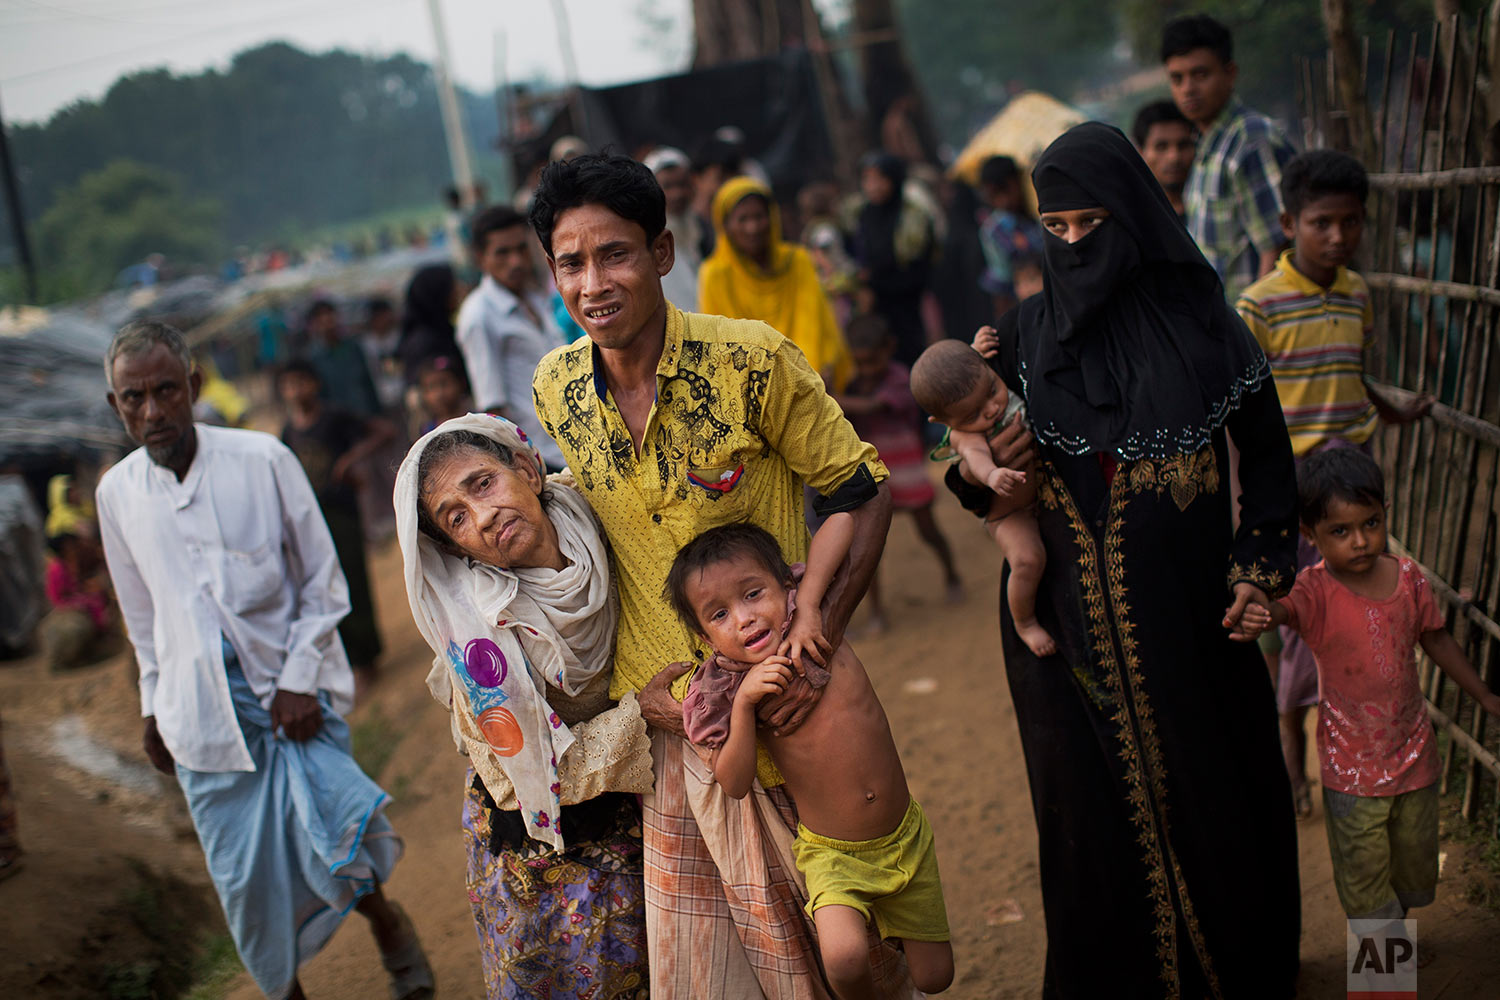 An exhausted Rohingya helps an elderly family member and a child as they arrive at Kutupalong refugee camp after crossing from Myanmmar to the Bangladesh side of the border, in Ukhia, Tuesday, Sept. 5, 2017. The man said he lost several family members in Myanmar. Tens of thousands of Rohingya Muslims, fleeing the latest round of violence to engulf their homes in Myanmar, have been walking for days or handing over their meager savings to Burmese and Bangladeshi smugglers to escape what they describe as certain death. (AP Photo/Bernat Armangue)